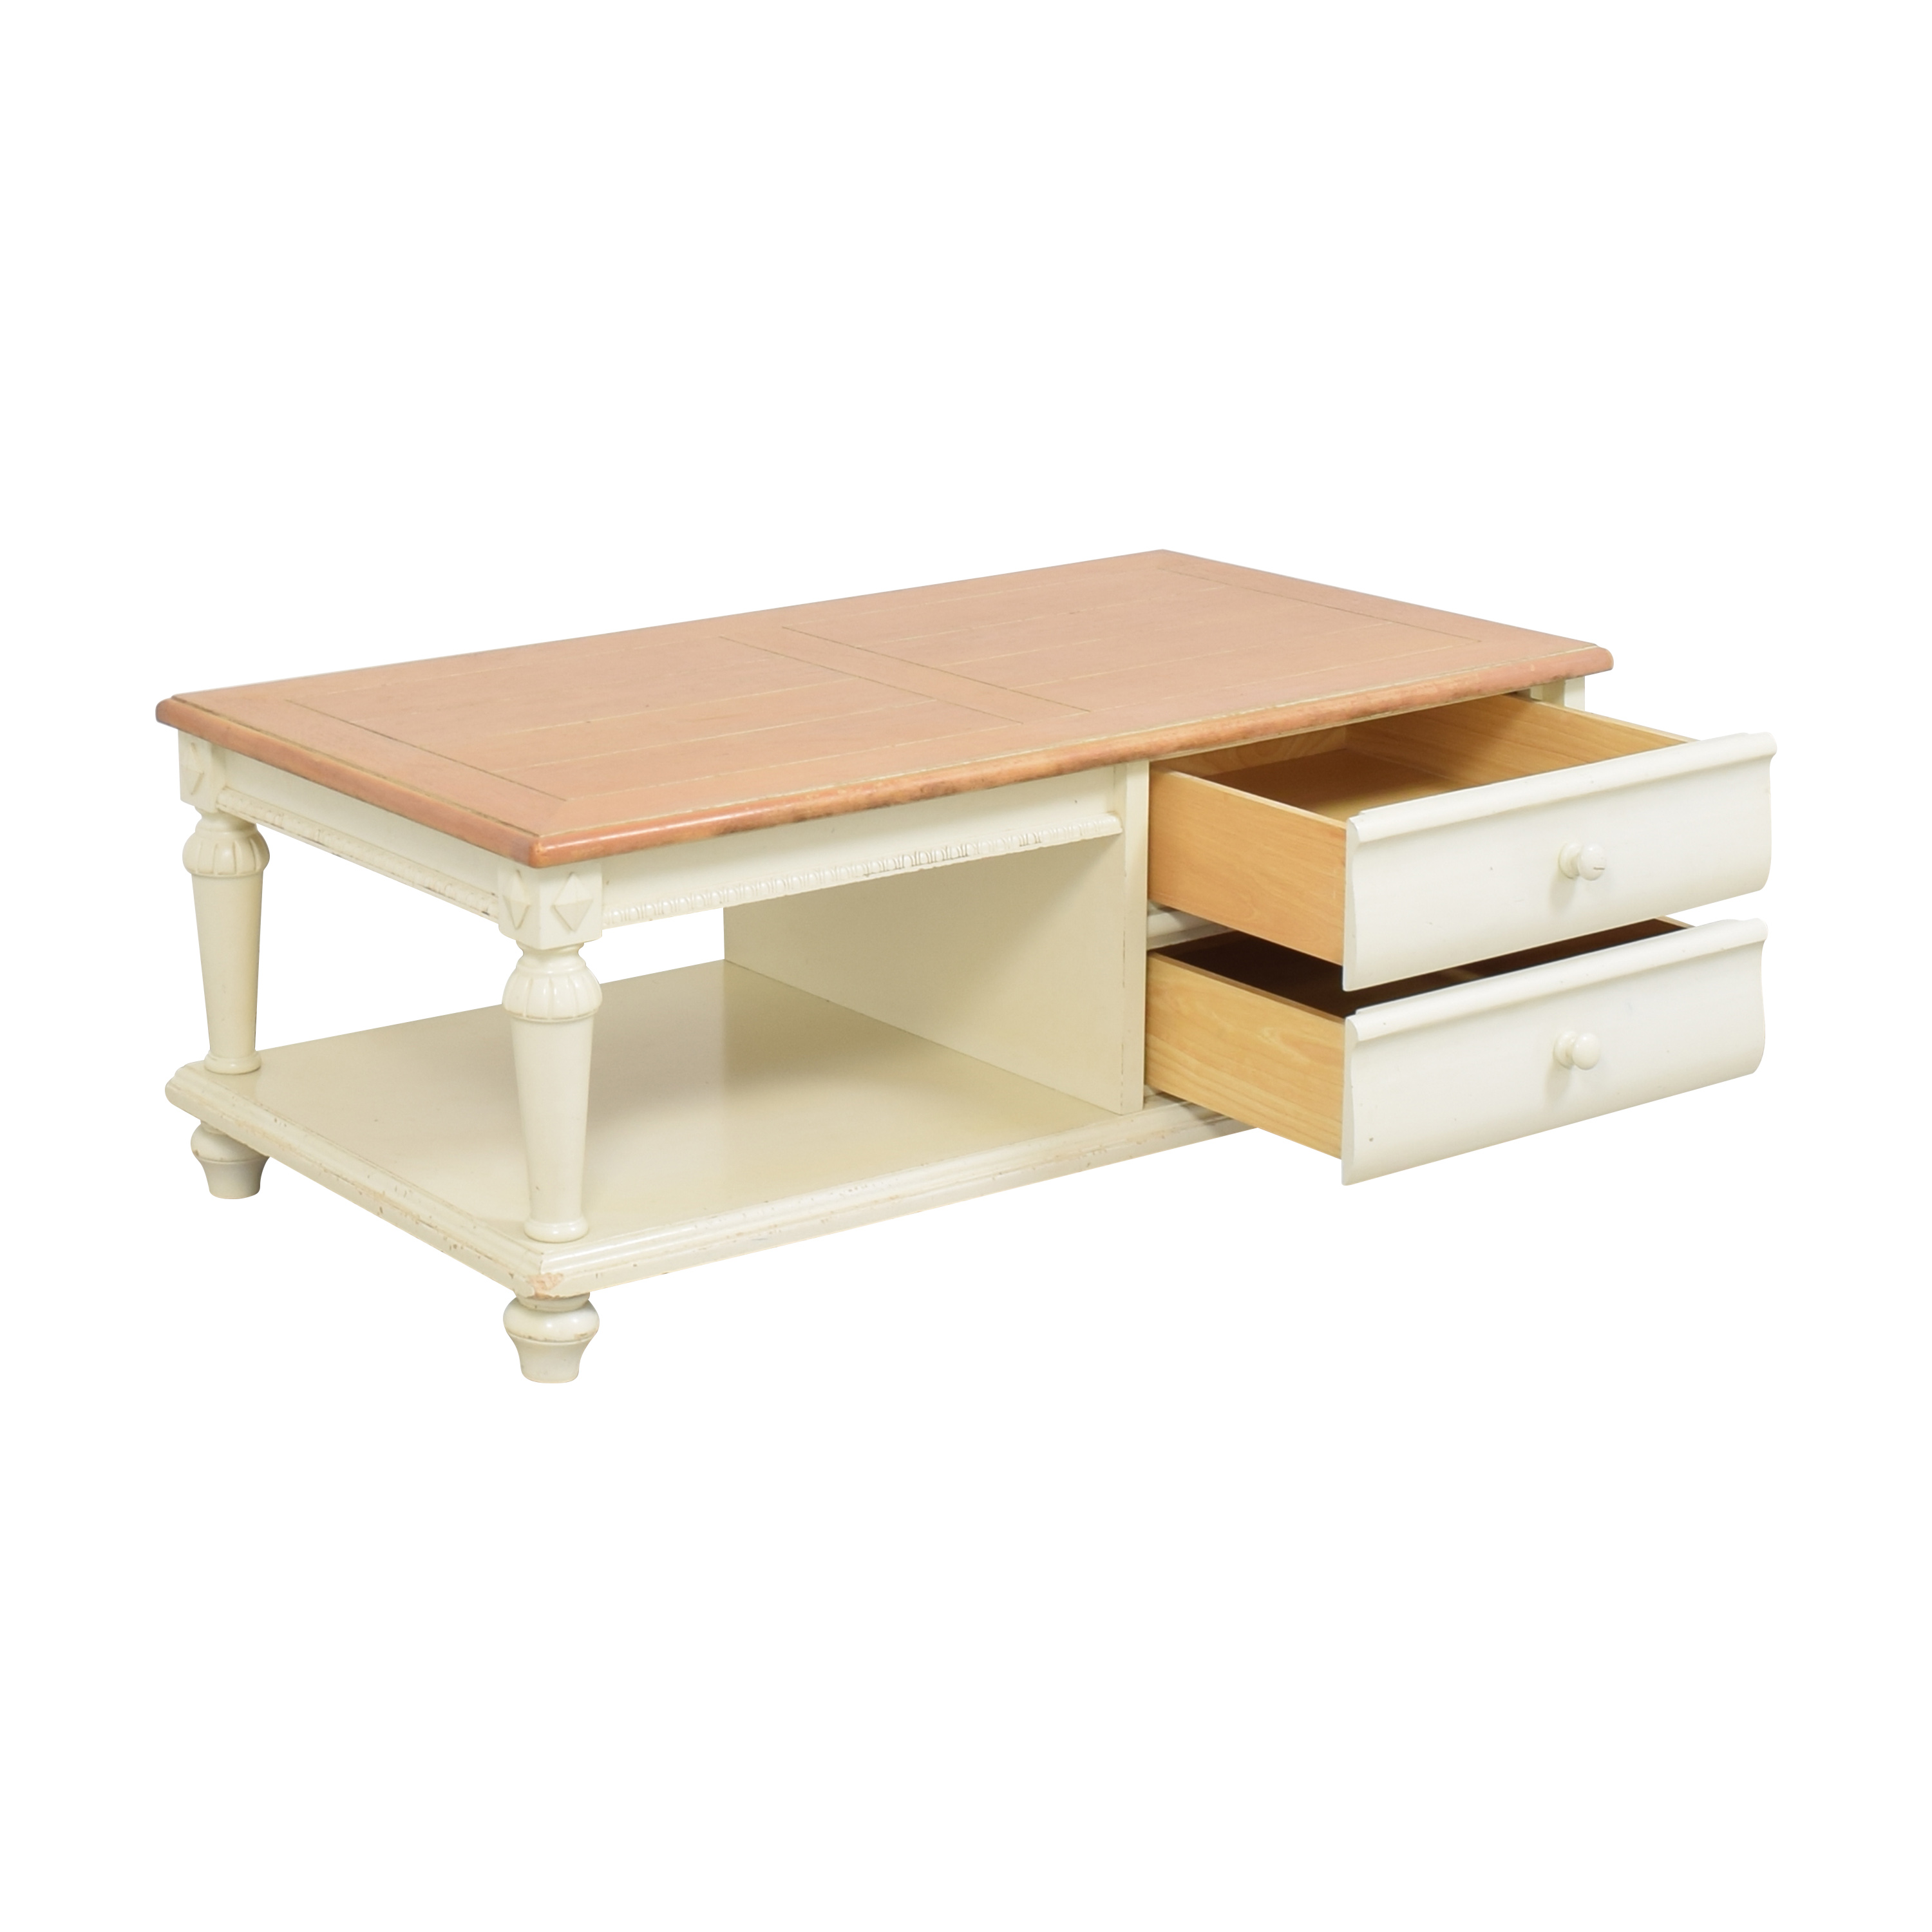 Thomasville Thomasville Summer Cottage Collection Coffee Table pa